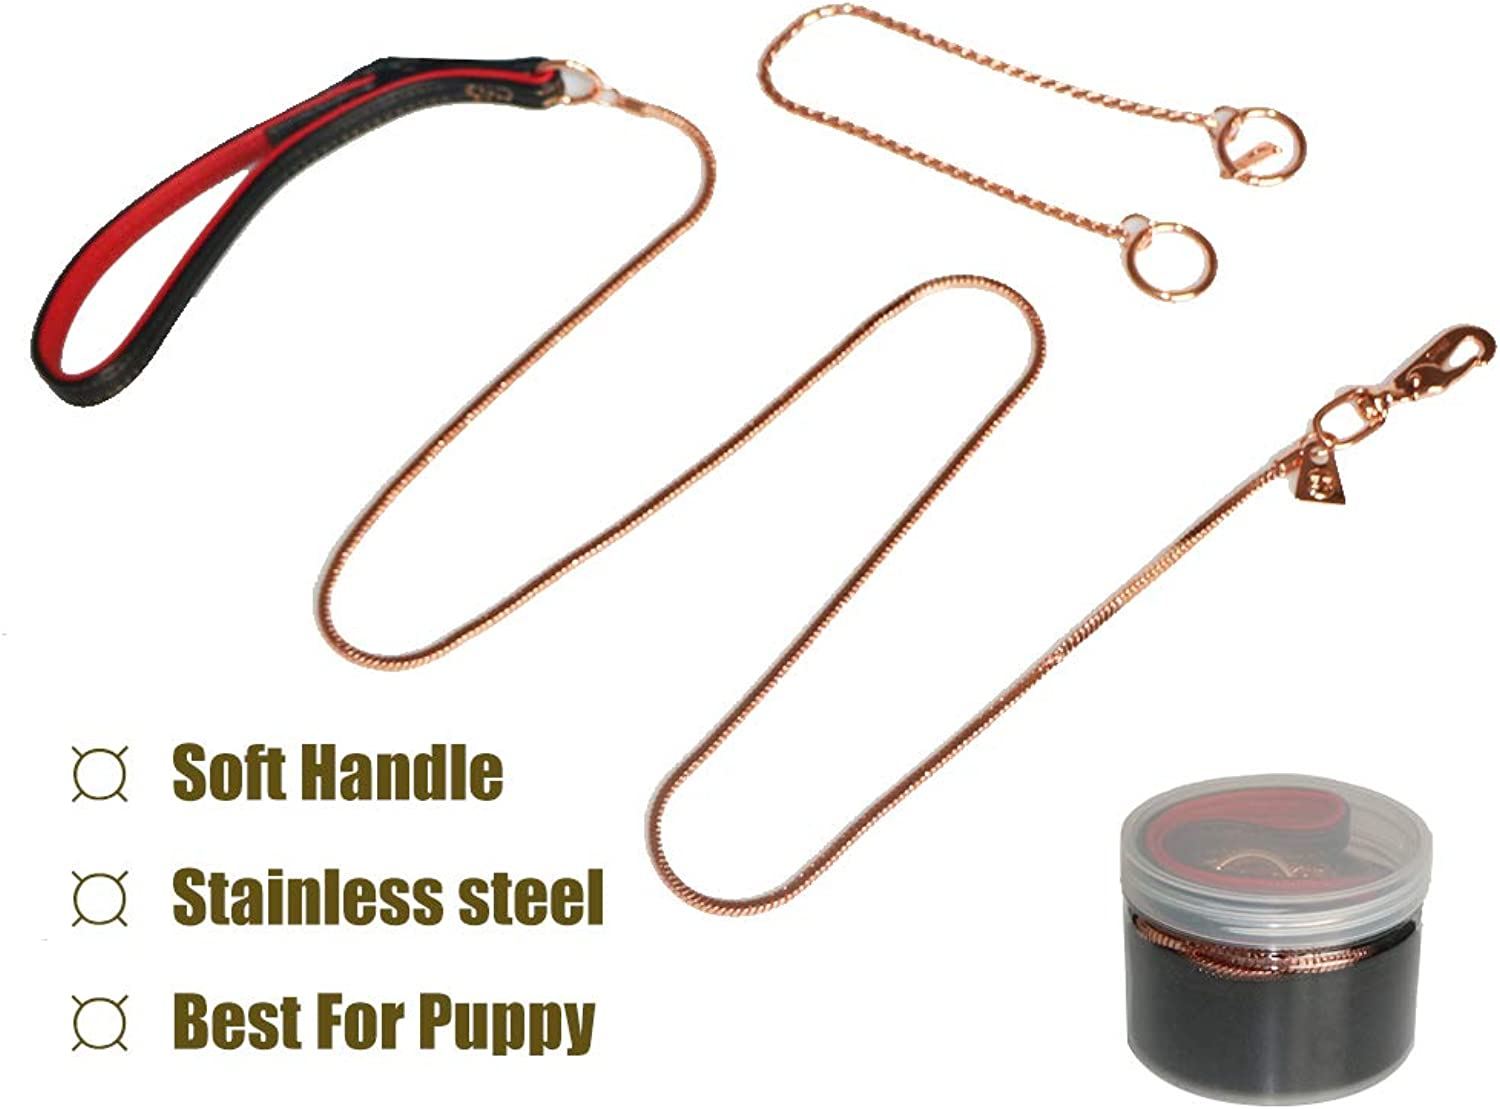 Jomilly Dog Leash, Strong and Durable Traditional Style Leash with Easy to Use Collar Hook